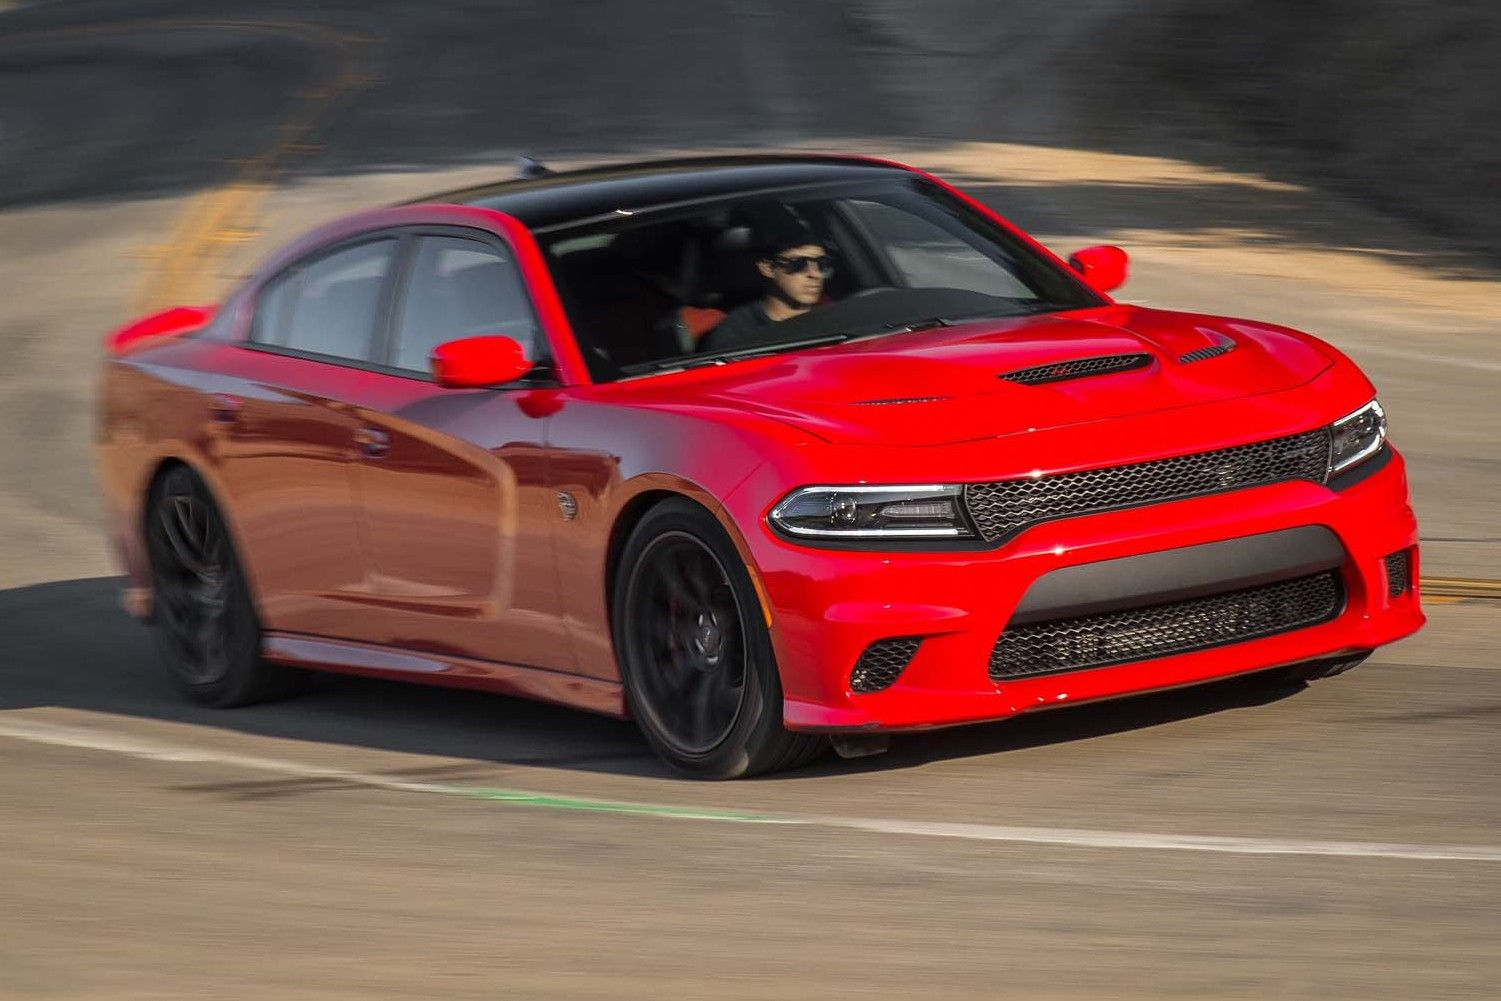 2020 dodge charger concept 2020 dodge charger is anticipated 2020 dodge charger concept 2020 dodge charger is anticipated cars and trucks pinterest dodge charger dodge charger srt and charger srt buycottarizona